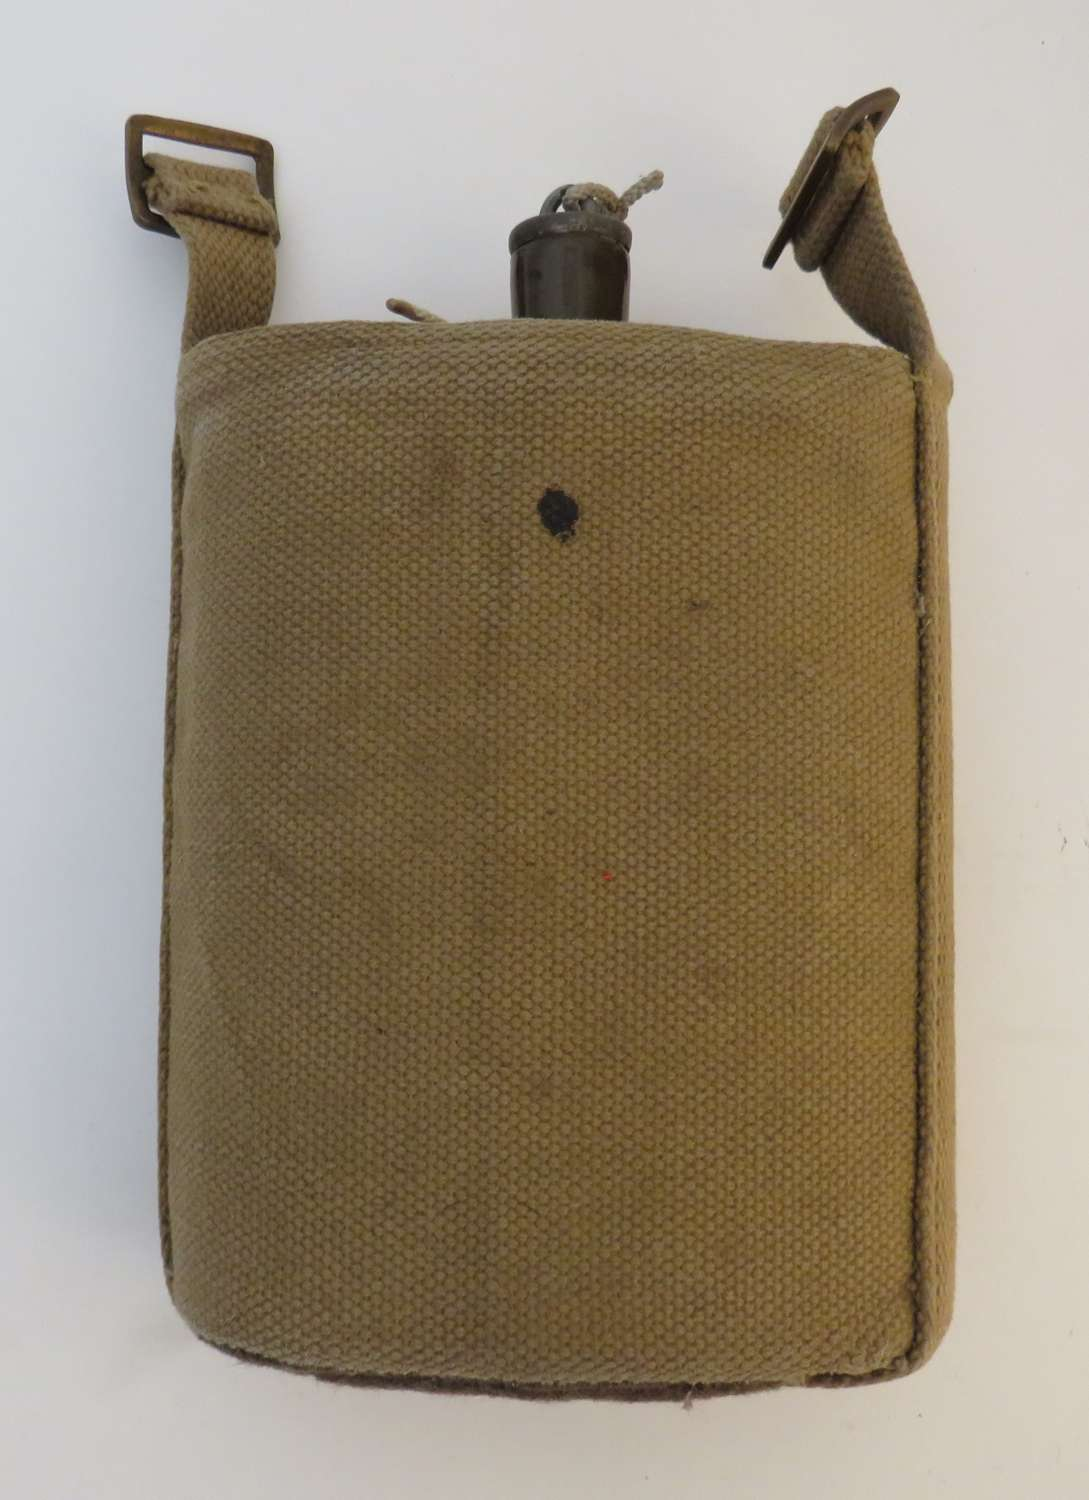 1937 Pattern Waterbottle and Cradle